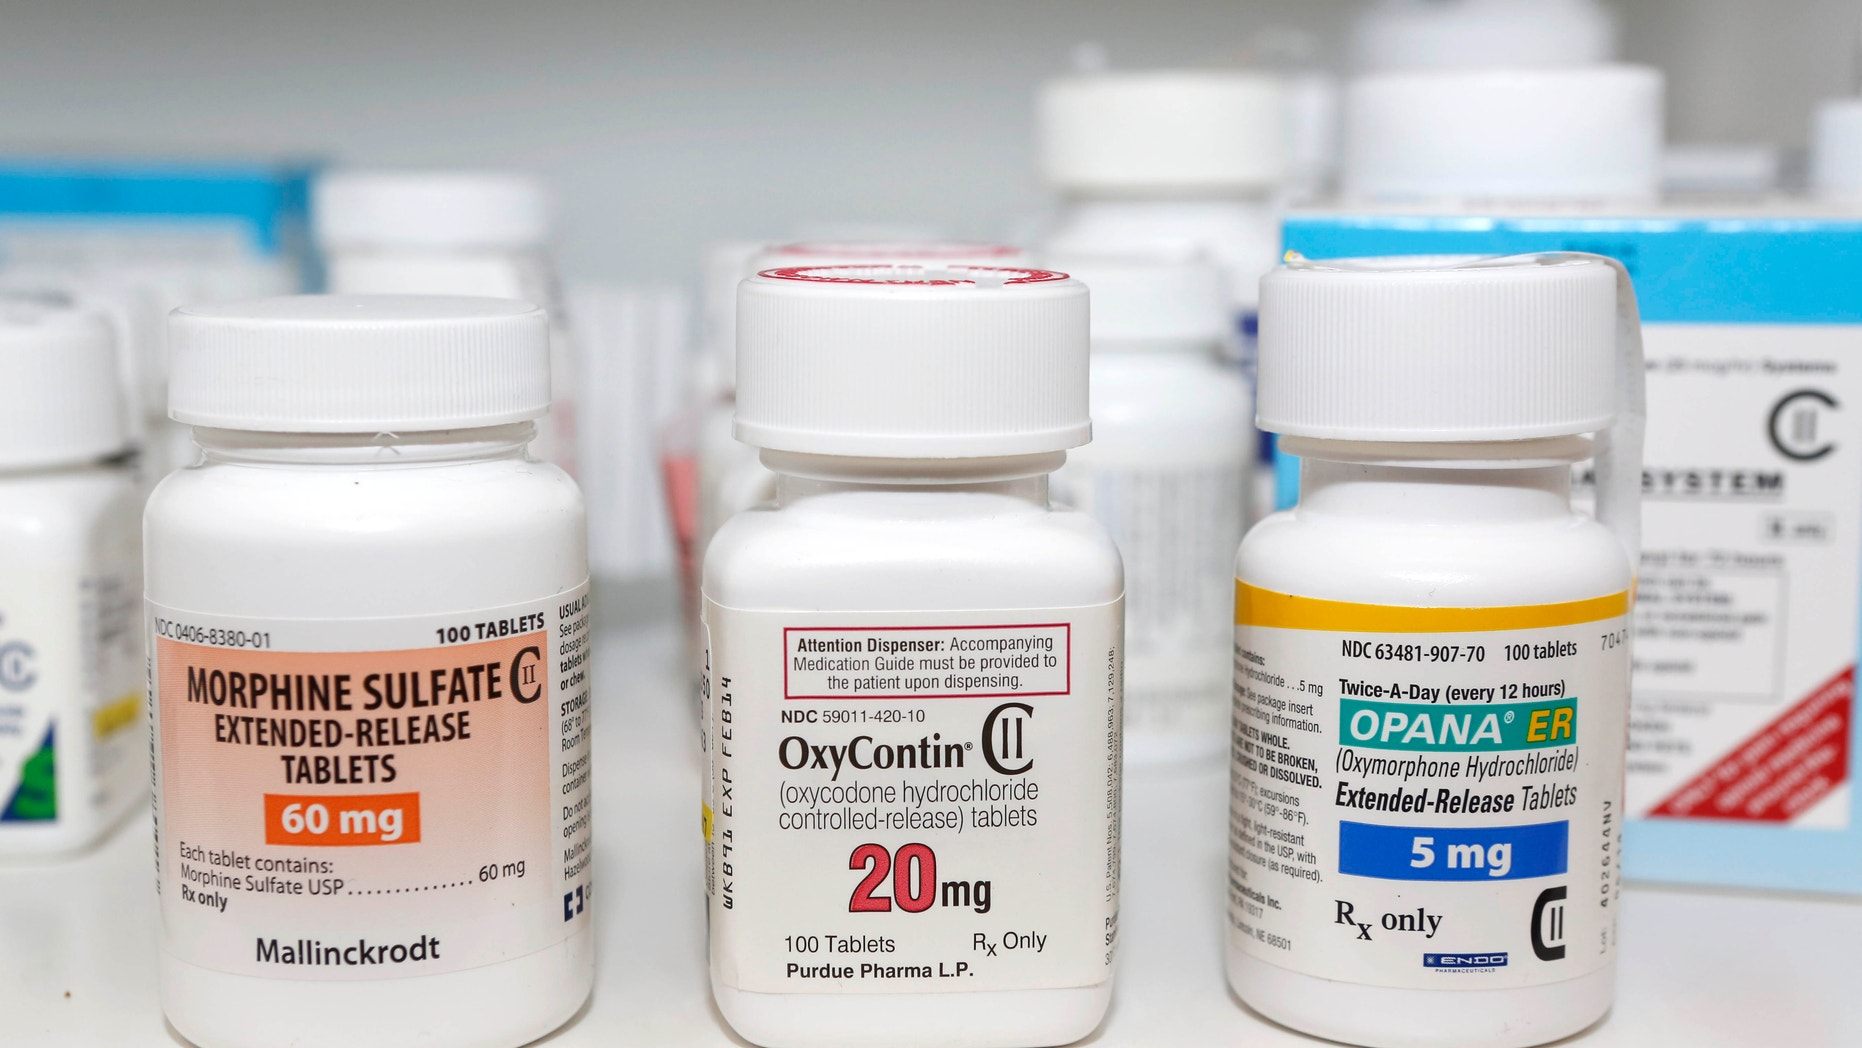 FILE - In this Jan. 18, 2013 file photo, Schedule 2 narcotics: Morphine Sulfate, OxyContin and Opana are displayed for a photograph in Carmichael, Calif. California doctors will be required to check a database of prescription narcotics before writing scripts for addictive drugs under legislation Gov. Jerry Brown signed Tuesday, Sept. 27, 2016, that aims to address the scourge of opioid abuse. (AP Photo/Rich Pedroncelli, File)